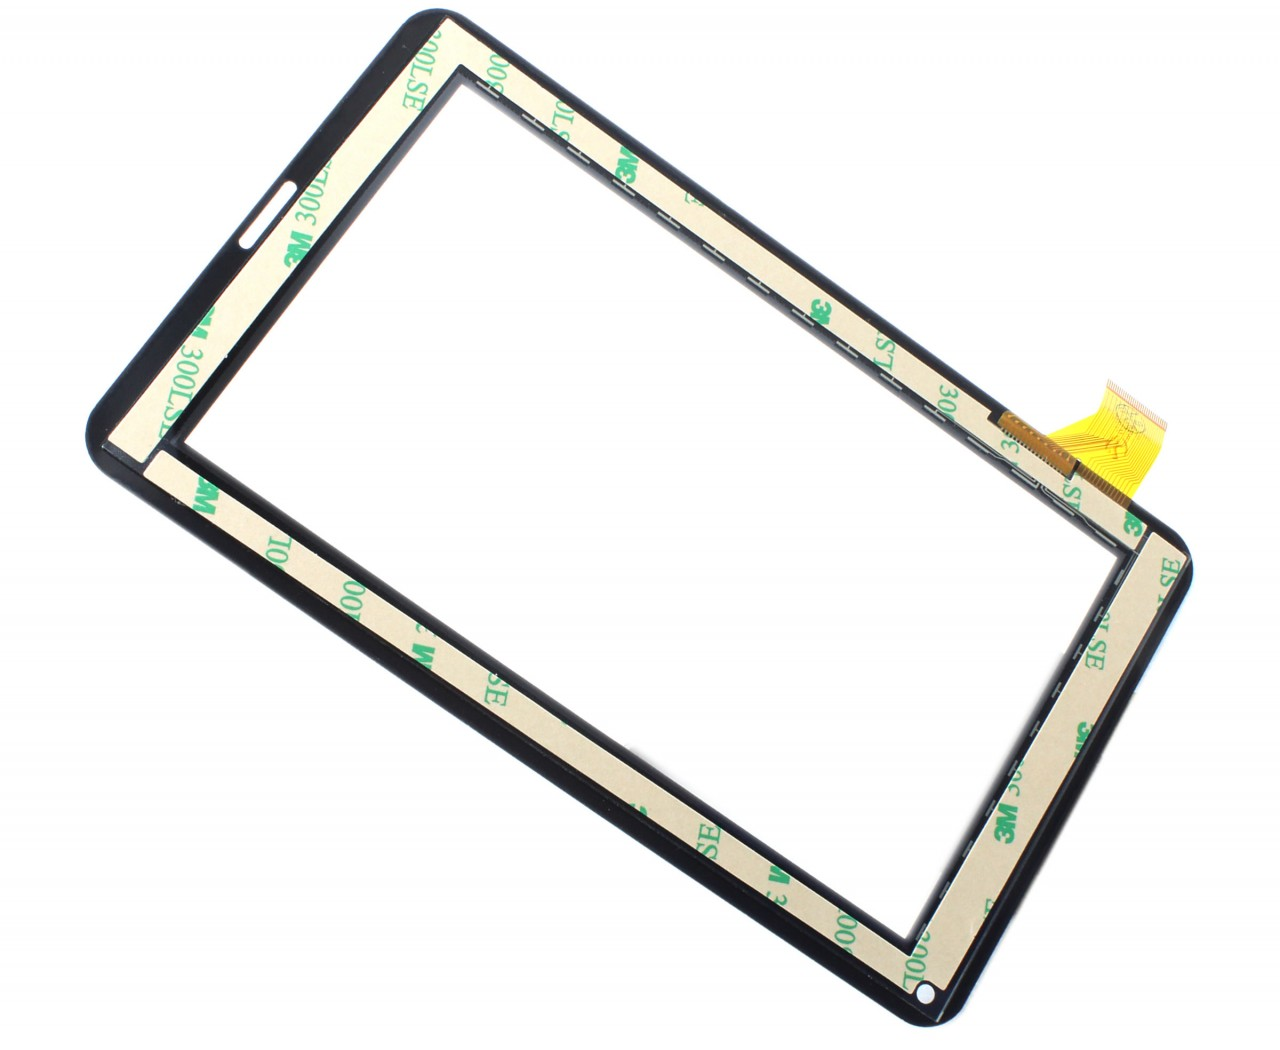 Touchscreen Digitizer Serioux Vision X Geam Sticla Tableta imagine powerlaptop.ro 2021